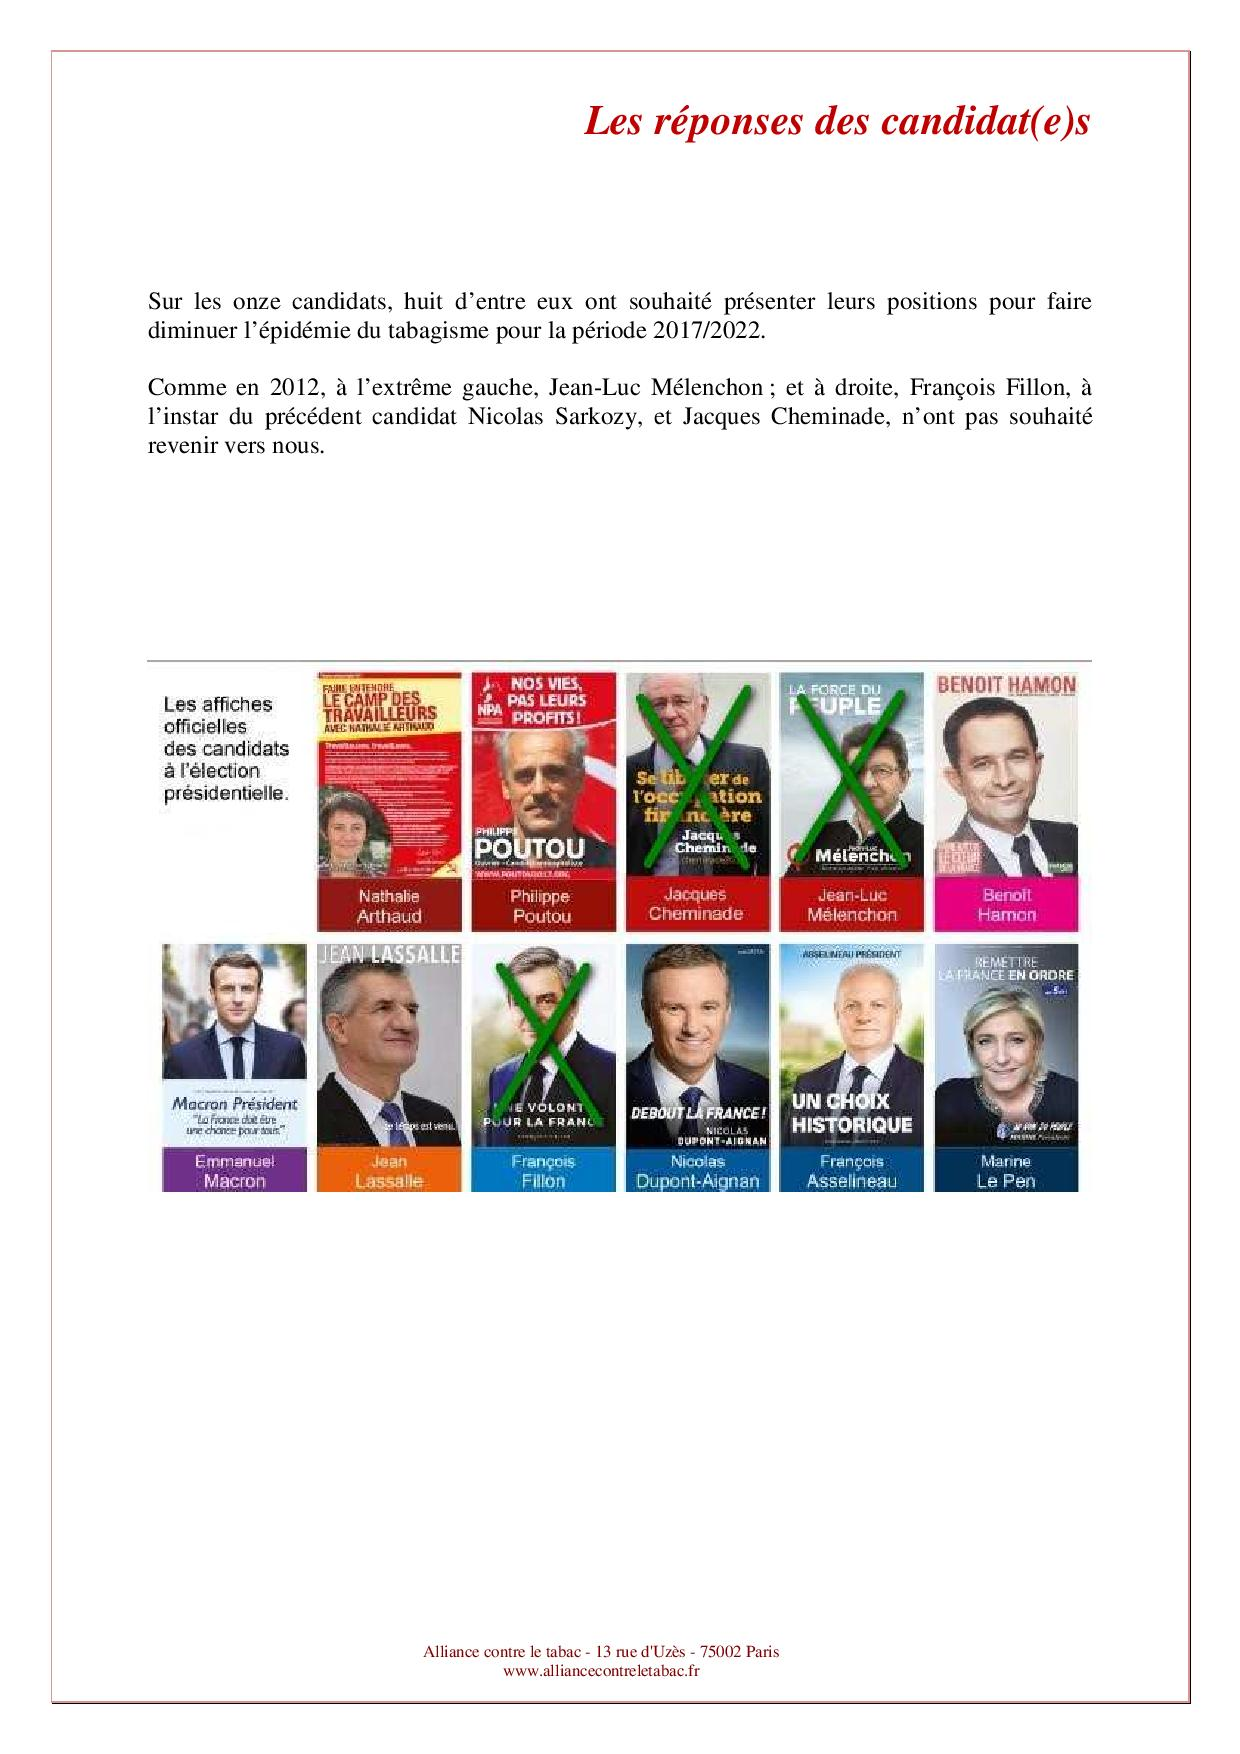 Alliance contre le tabac - DP - 11042017-page-004.jpg